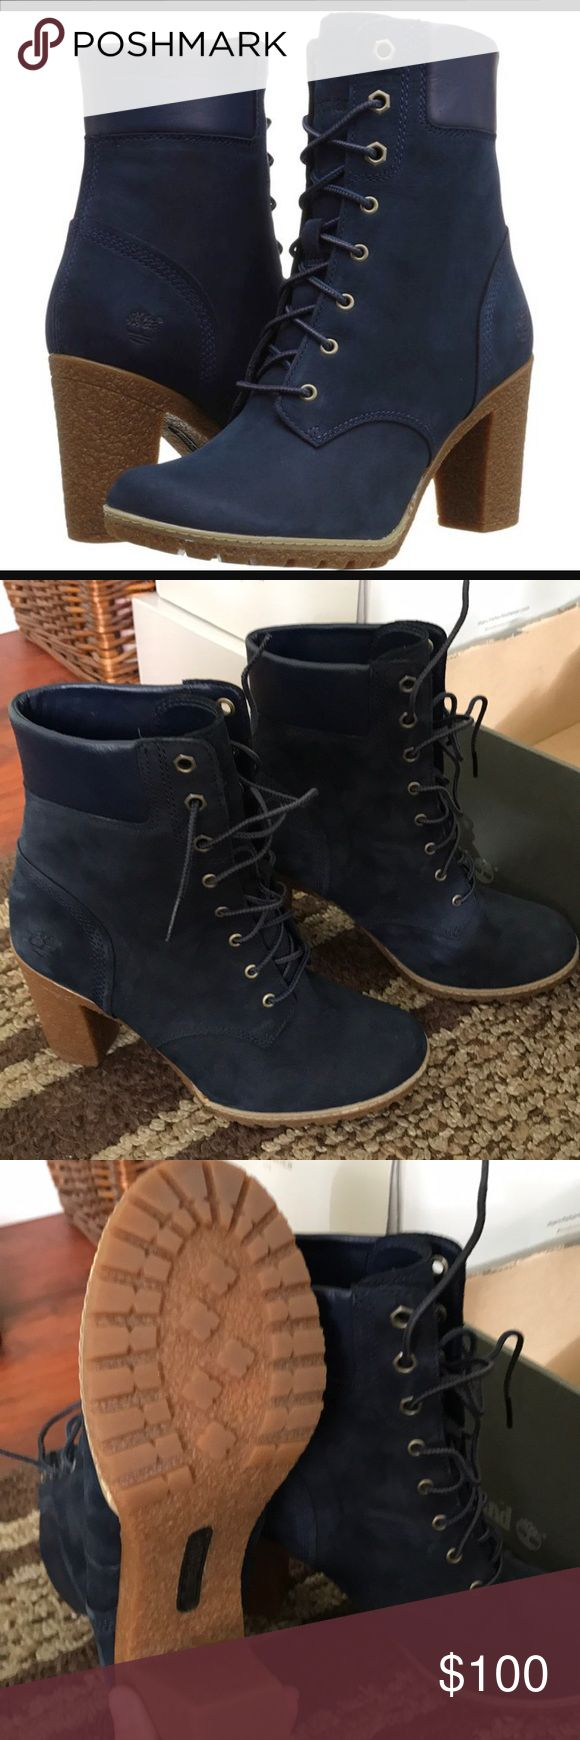 Timberland heeled boots Heeled timberlands. Navy blue Timberland Shoes Winter & Rain Boots